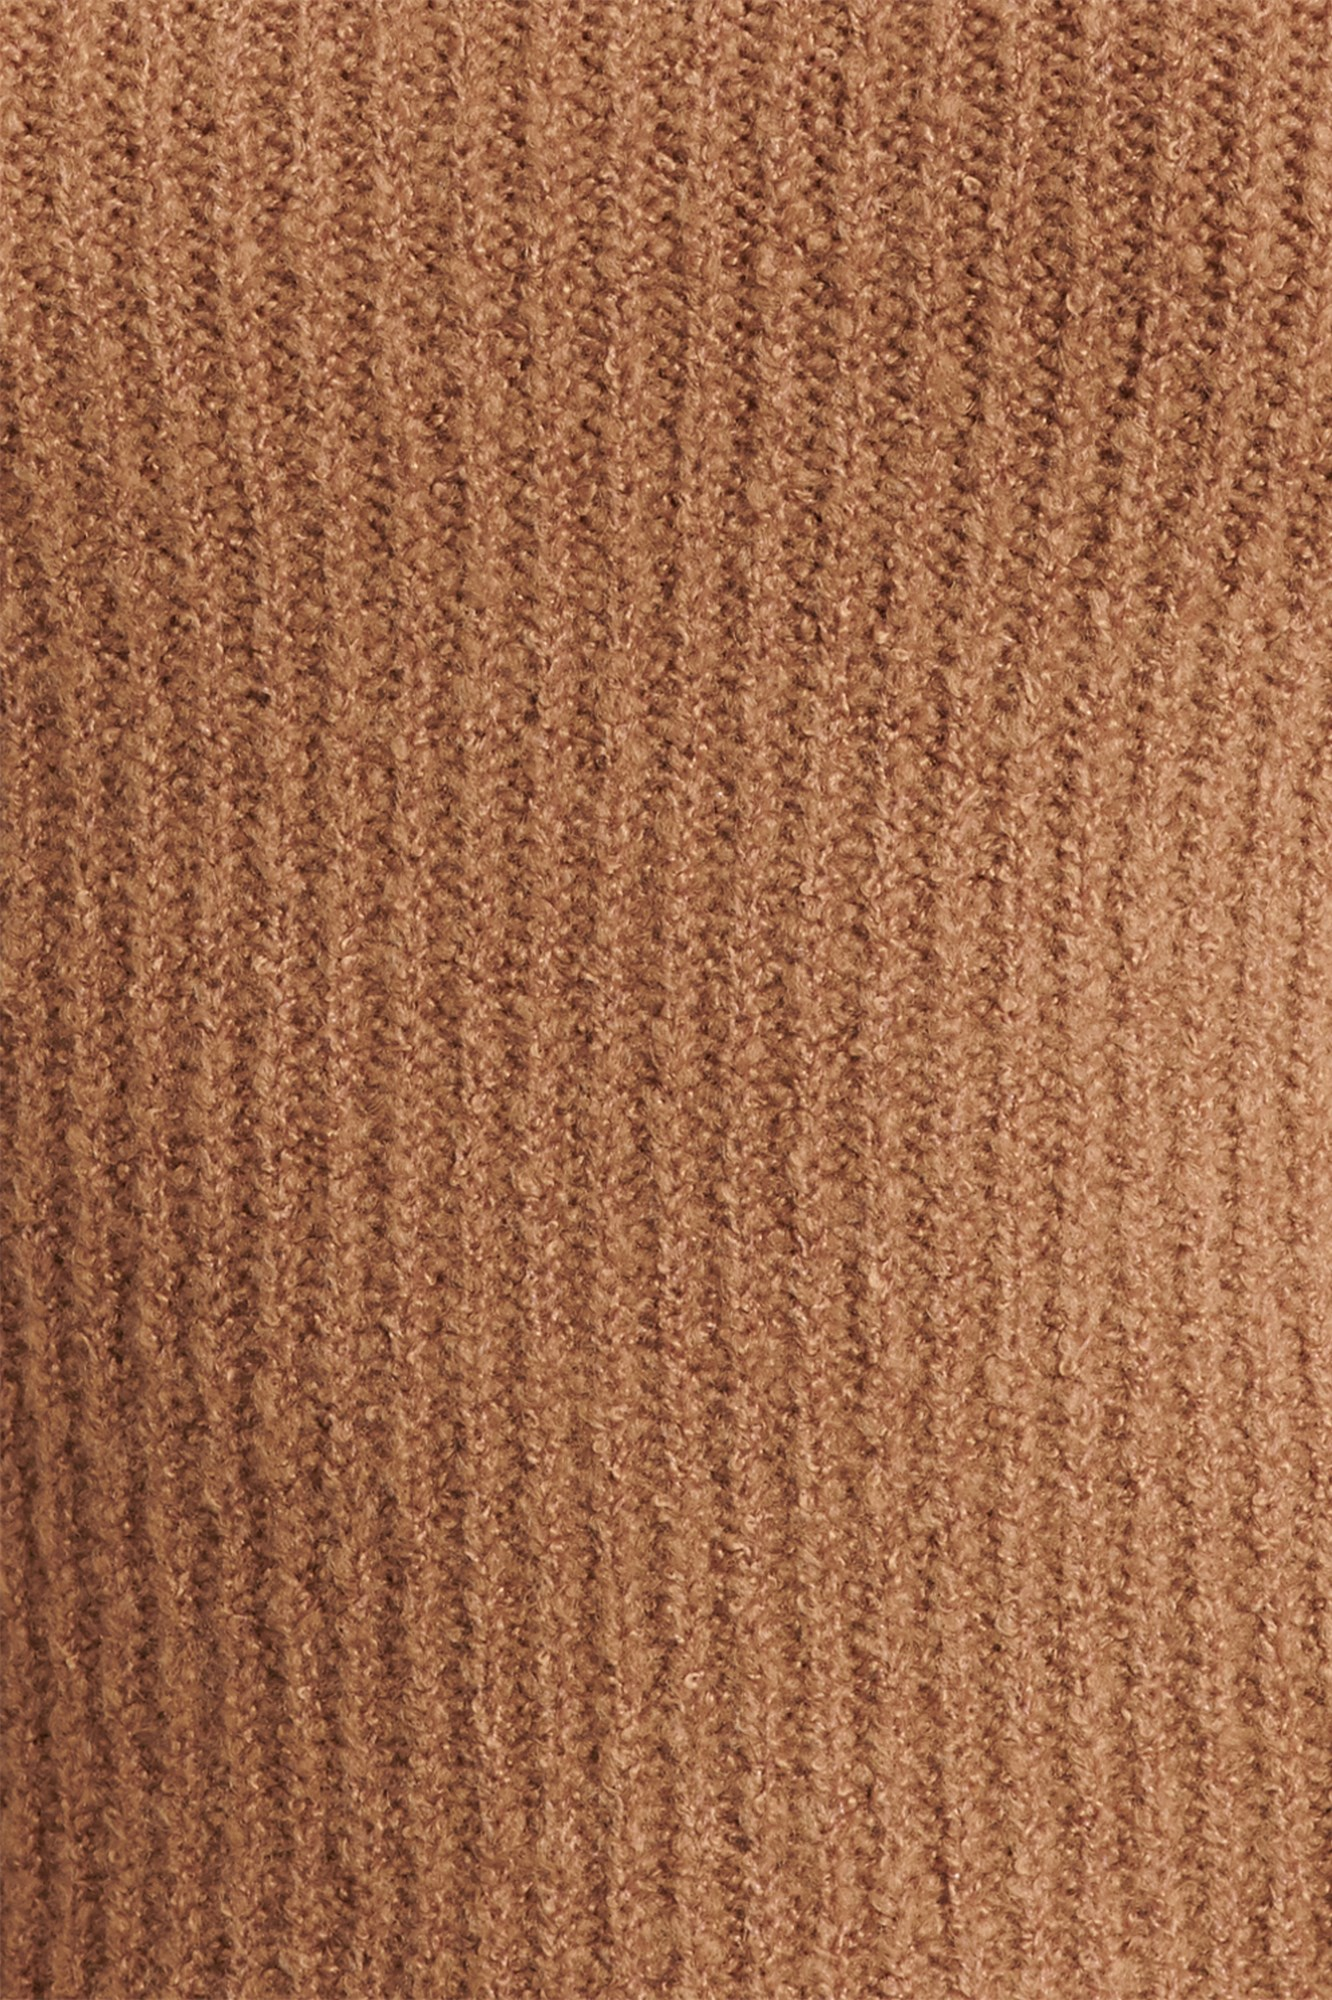 Image 5 of The Audrey Sweater